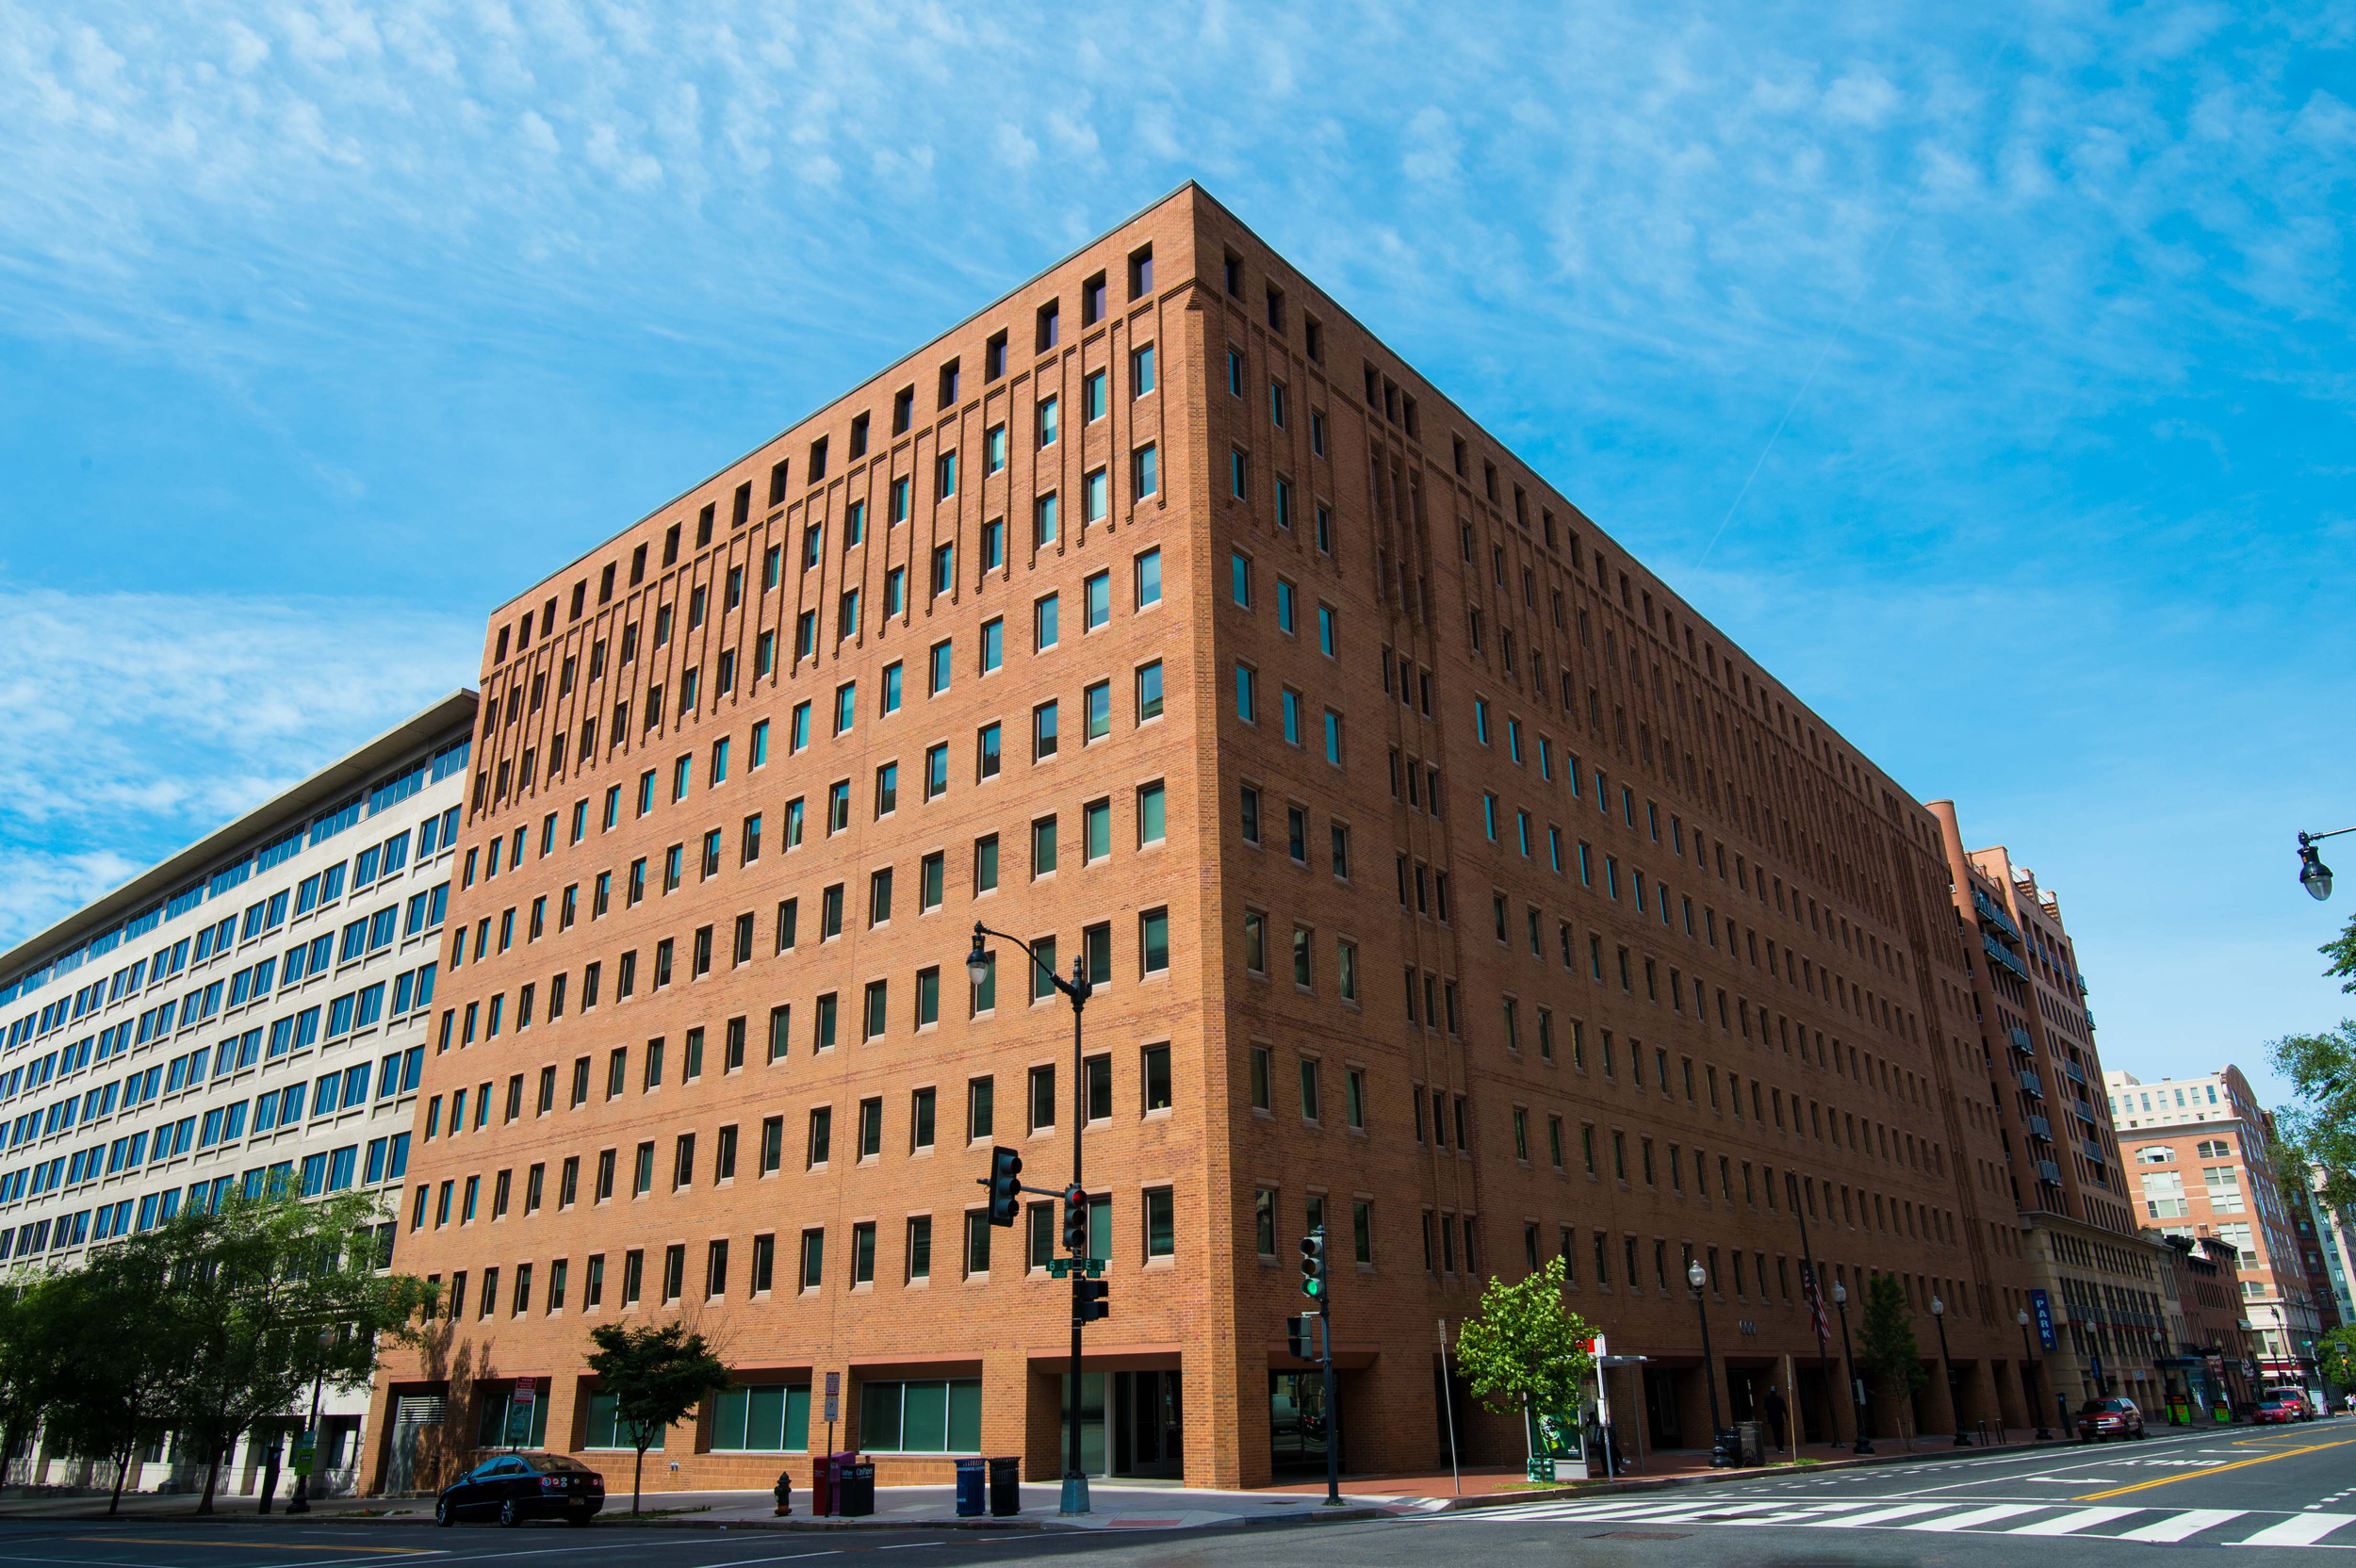 600 E Street, NW; Washington, DC 20004   Developed a 325,000-square-foot office building in northwest Washington, DC in 1972.